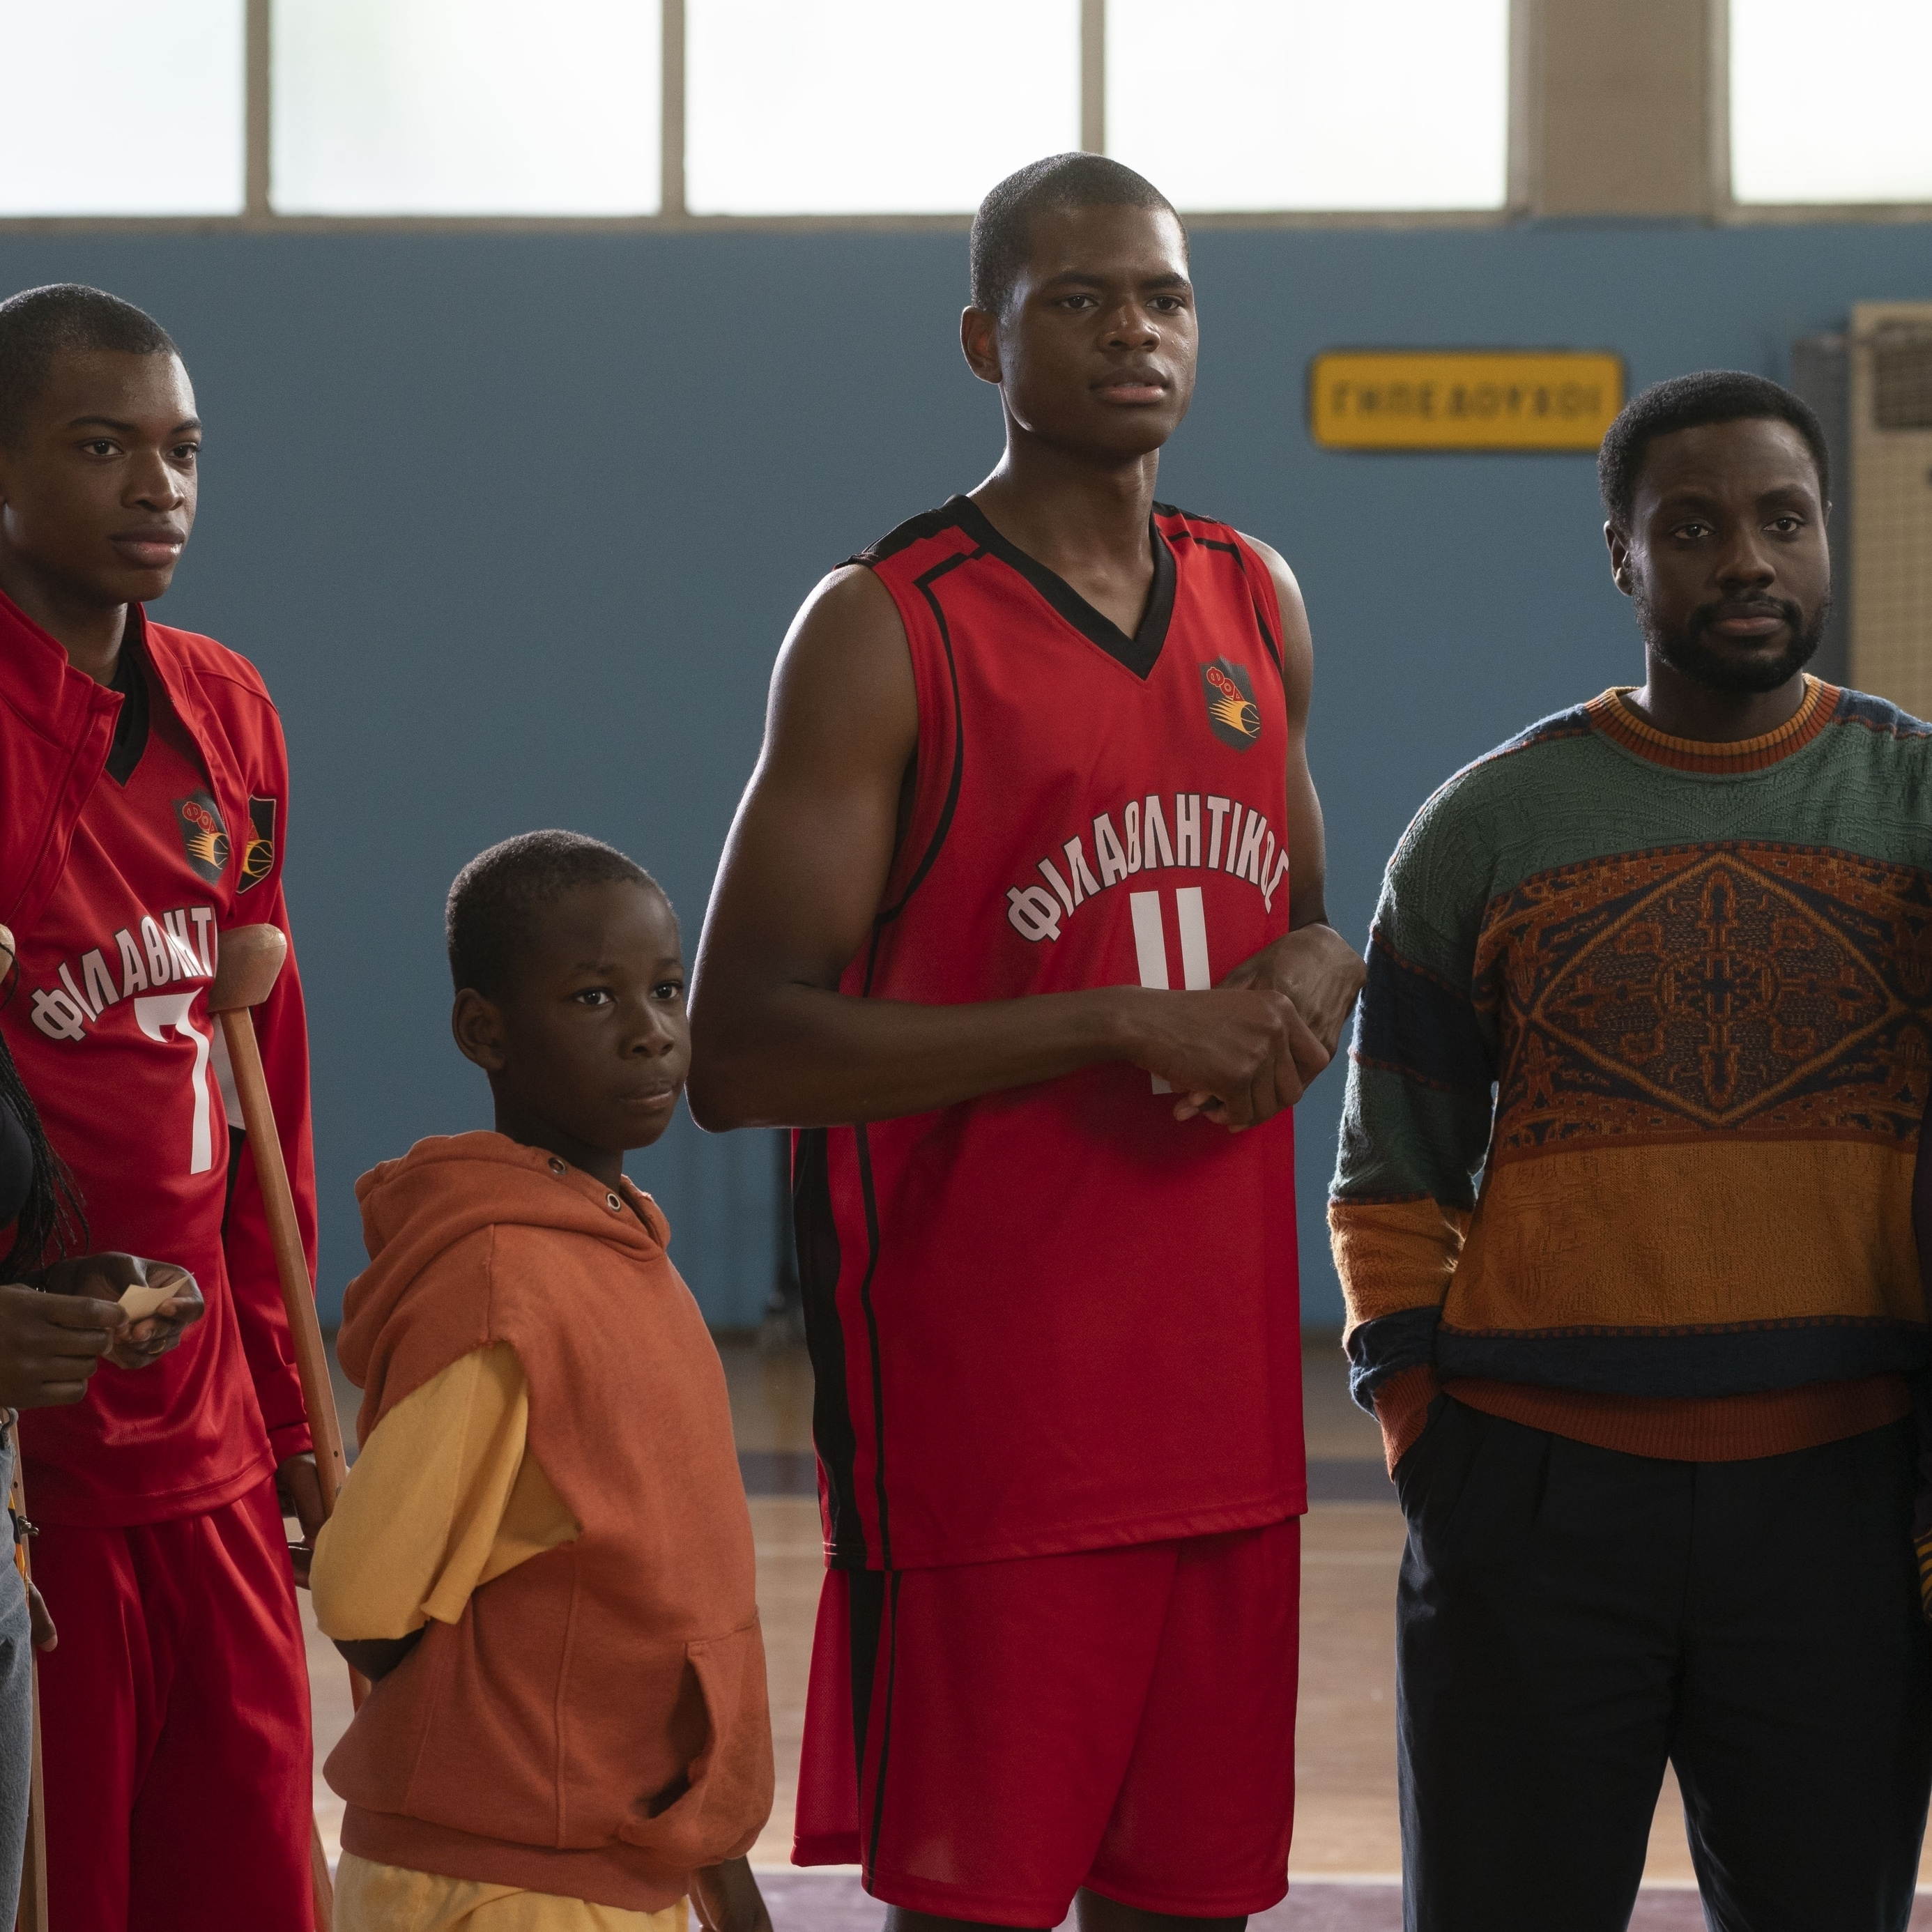 """""""Rise,"""" A New Film From Disney Based On The Triumphant Real Life Story About The Remarkable Family Behind NBA Champs Giannis, Thanasis And Kostas Antetokounmpo, And Their Younger Brother Alex, To Premiere In 2022 On Disney+"""